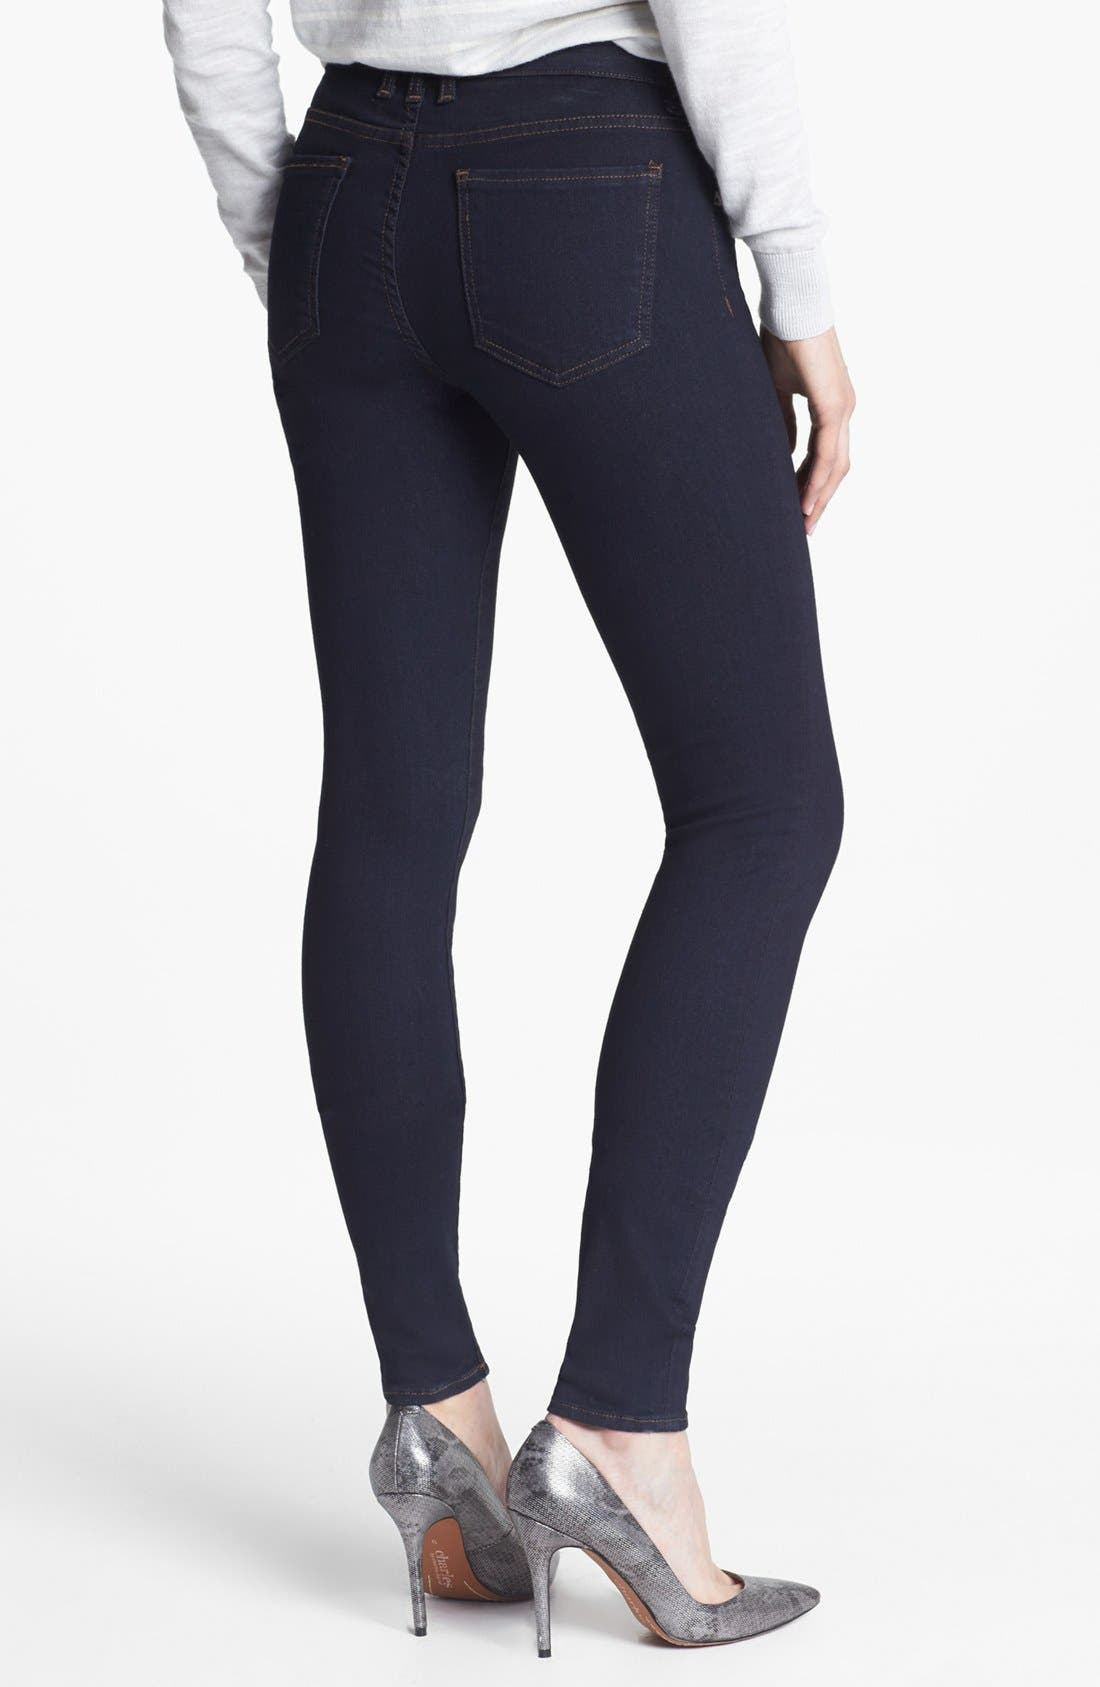 'Mia' Skinny Jeans,                             Alternate thumbnail 2, color,                             Outspoken Wash